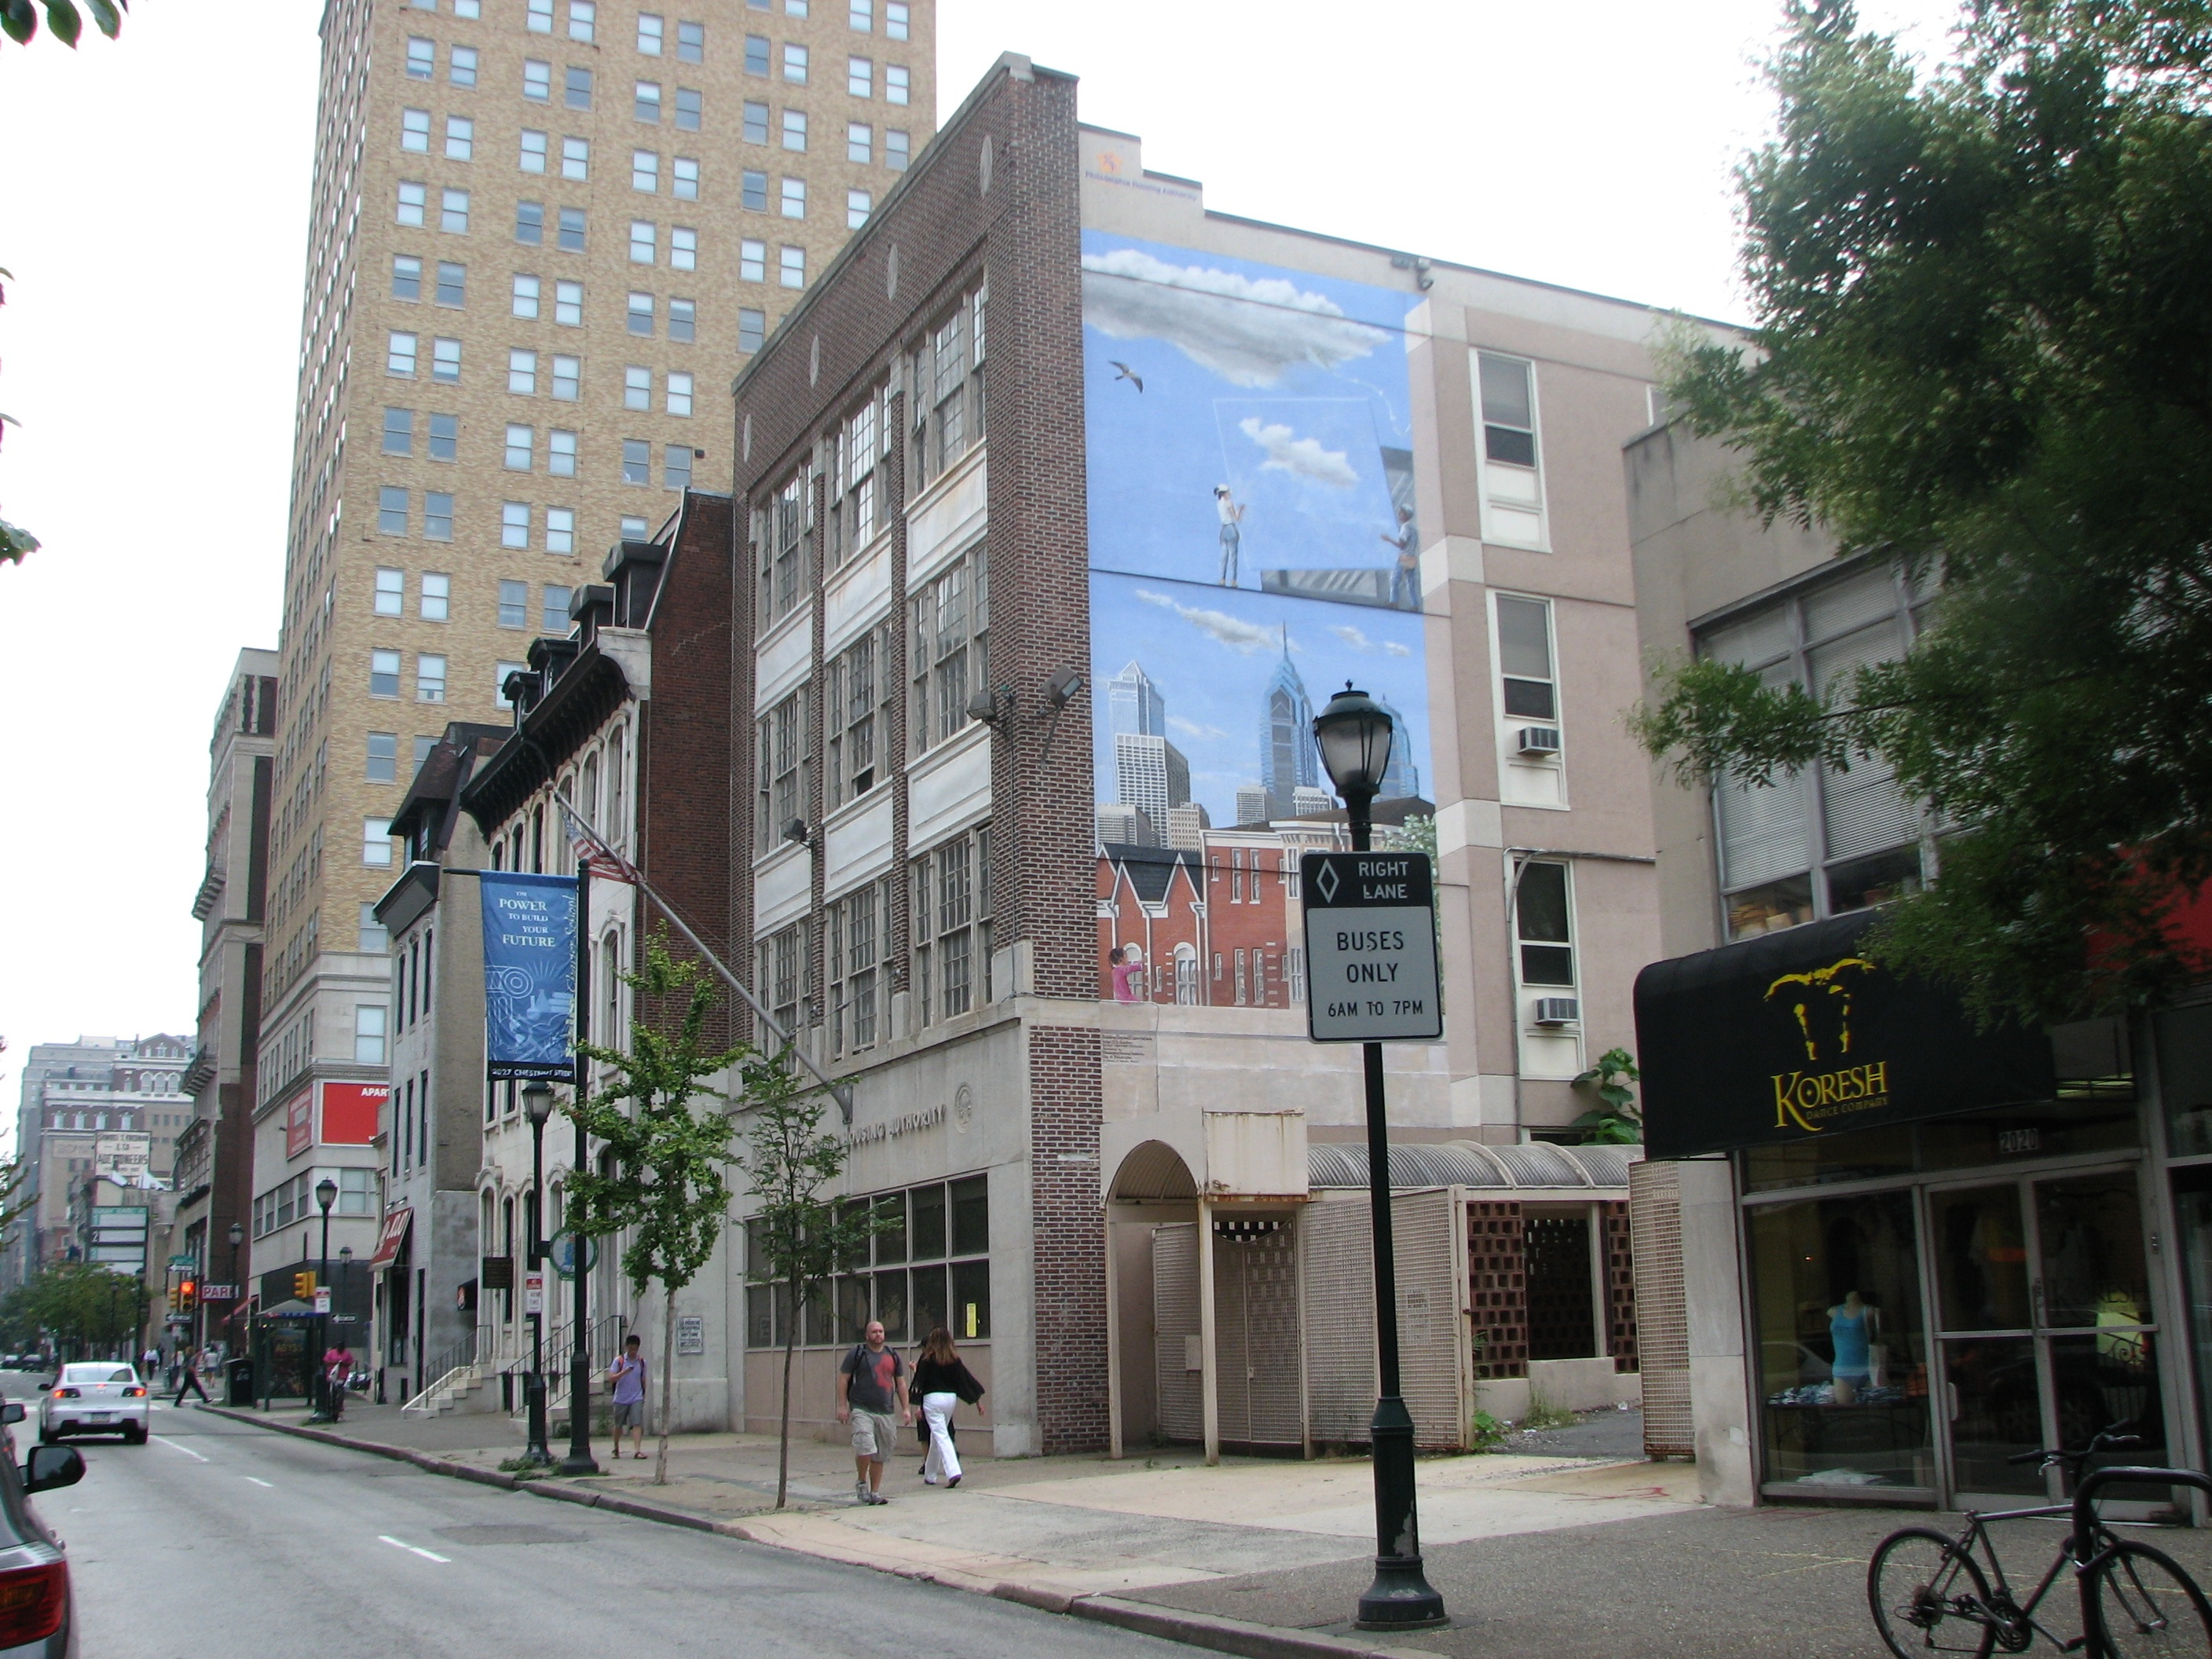 The view of the existing PHA building, looking east on Chestnut Street.